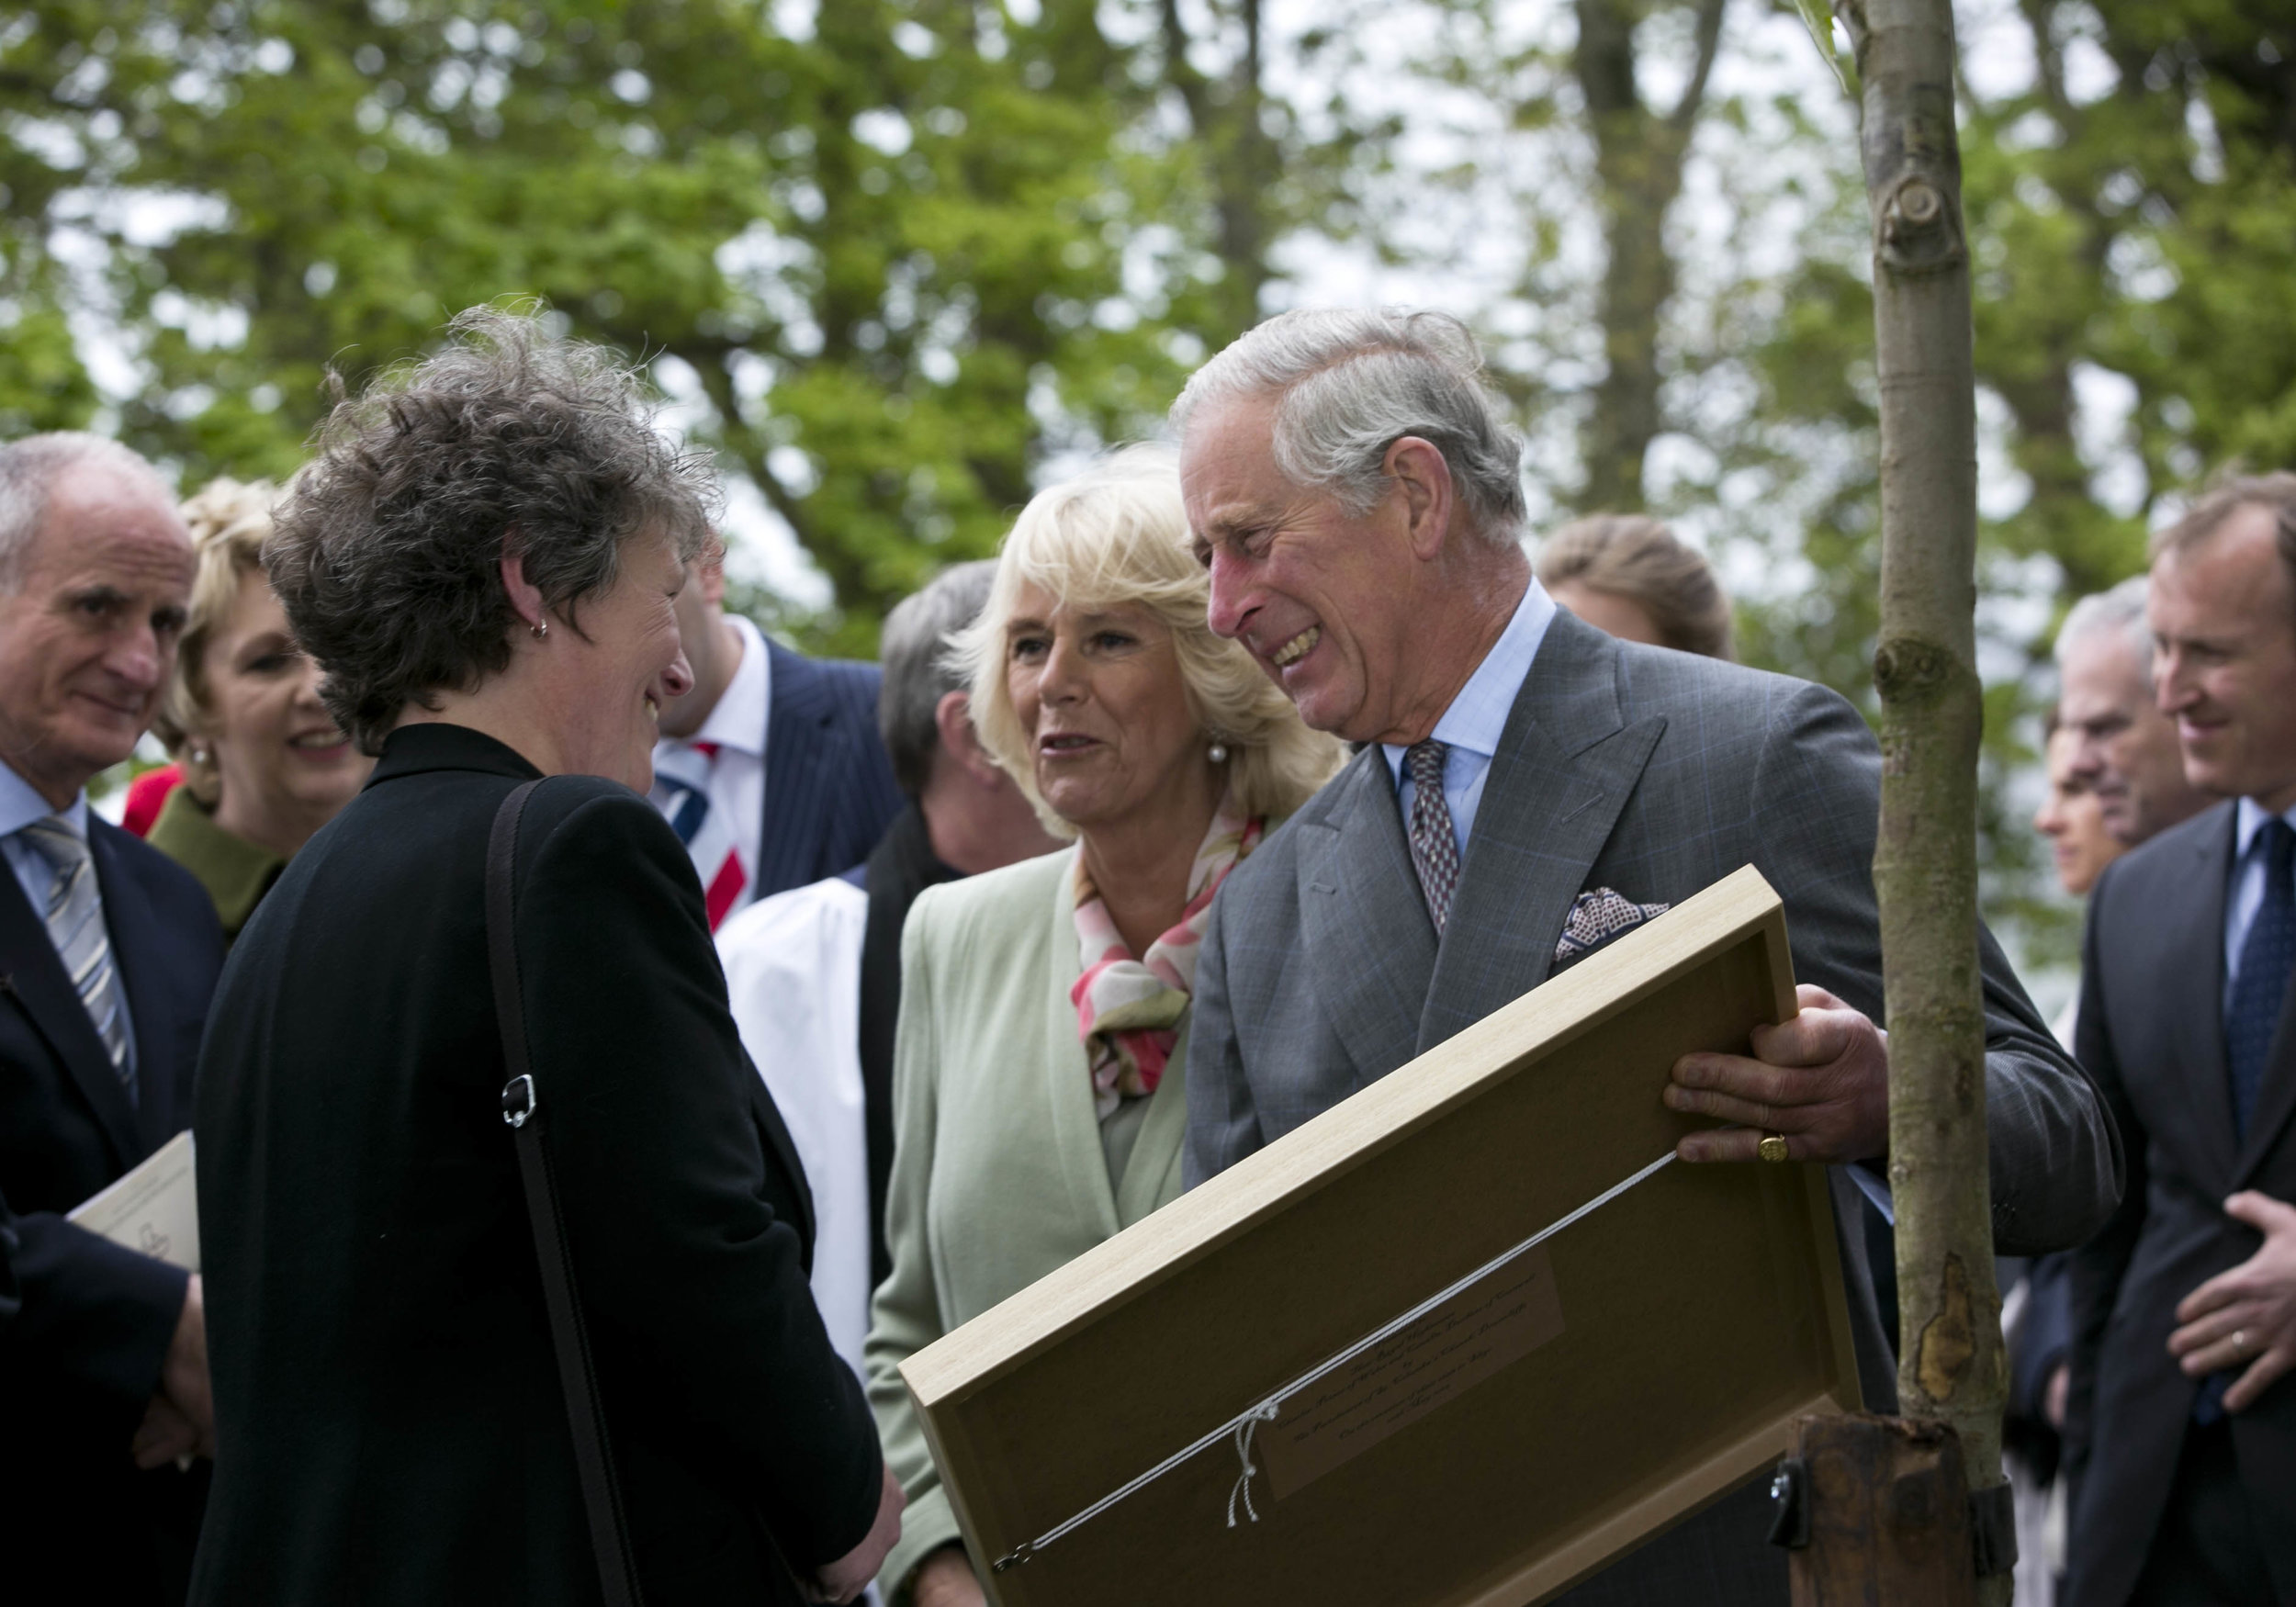 HRH The Prince of Wales with commissioned gift